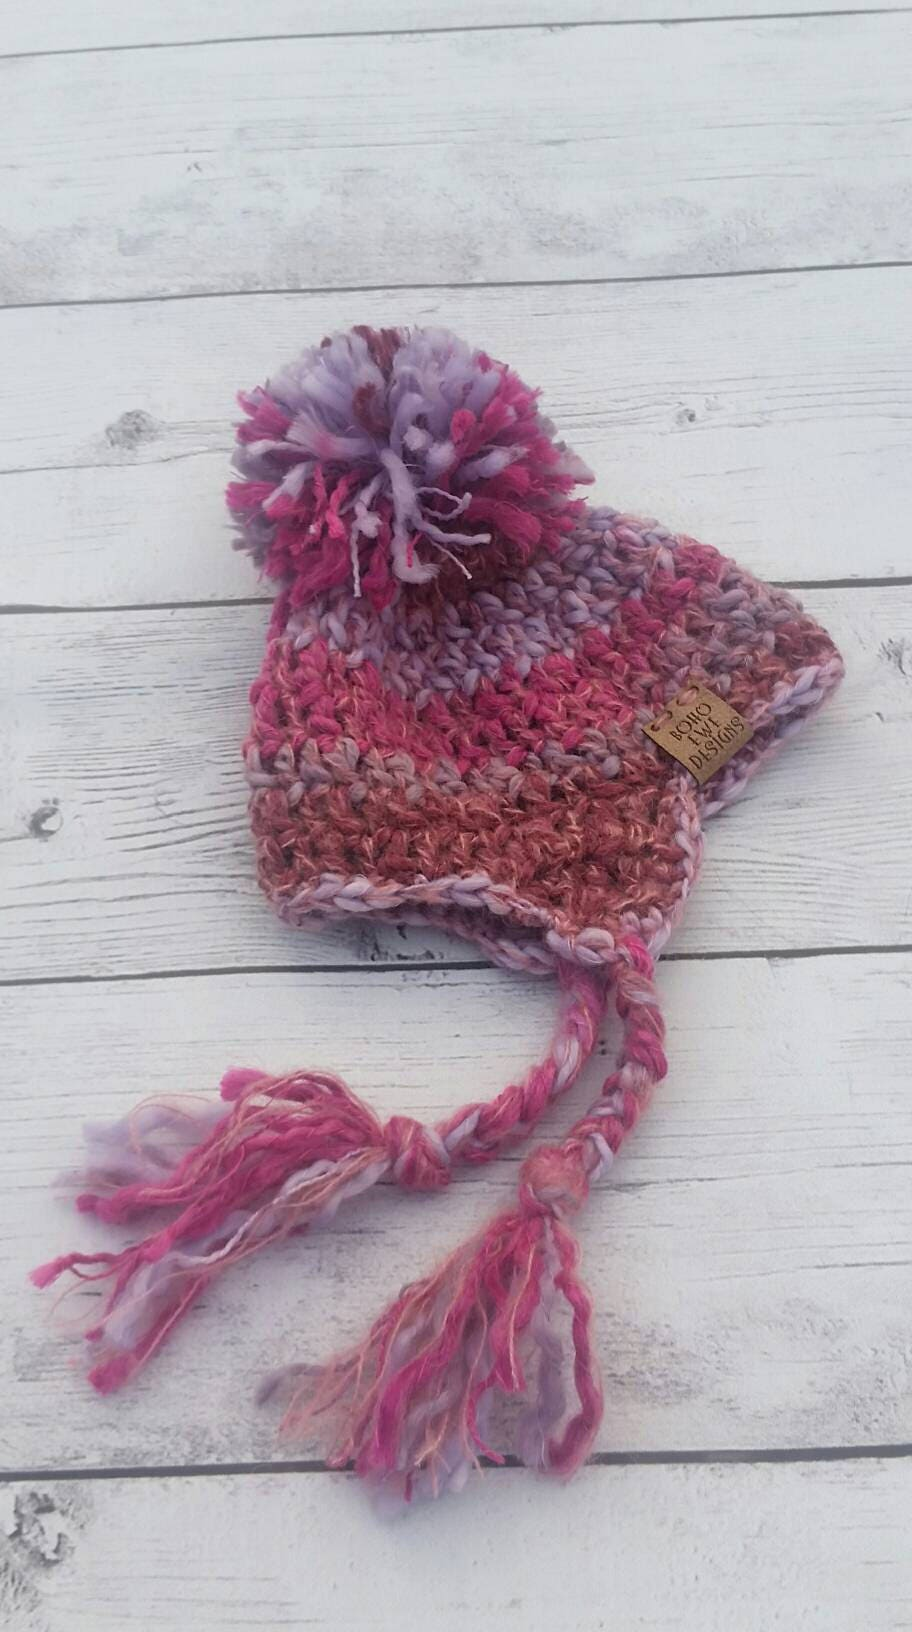 Baby Handspun Pink/Purple Crochet Earflap Pom Pom Hat, Merino and Mohair Unique Baby Hat, Boho Baby, Photo Prop, Baby Earflap Hat with Pom